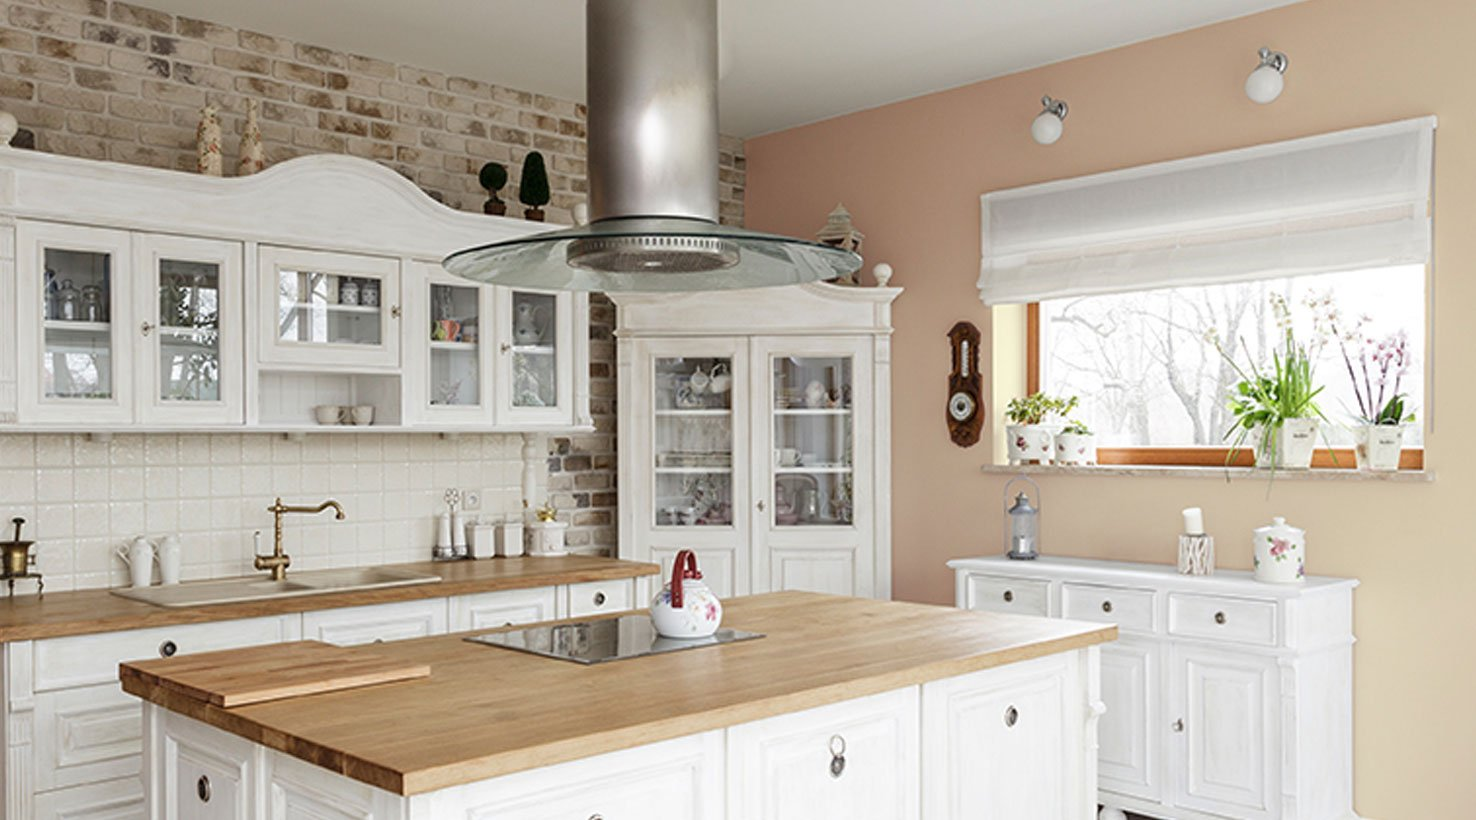 Kitchen Cabinet Color Graphite Sherwin Williams Tuscan Wall Paint Colors 2018 1476x820 Wallpaper Teahub Io